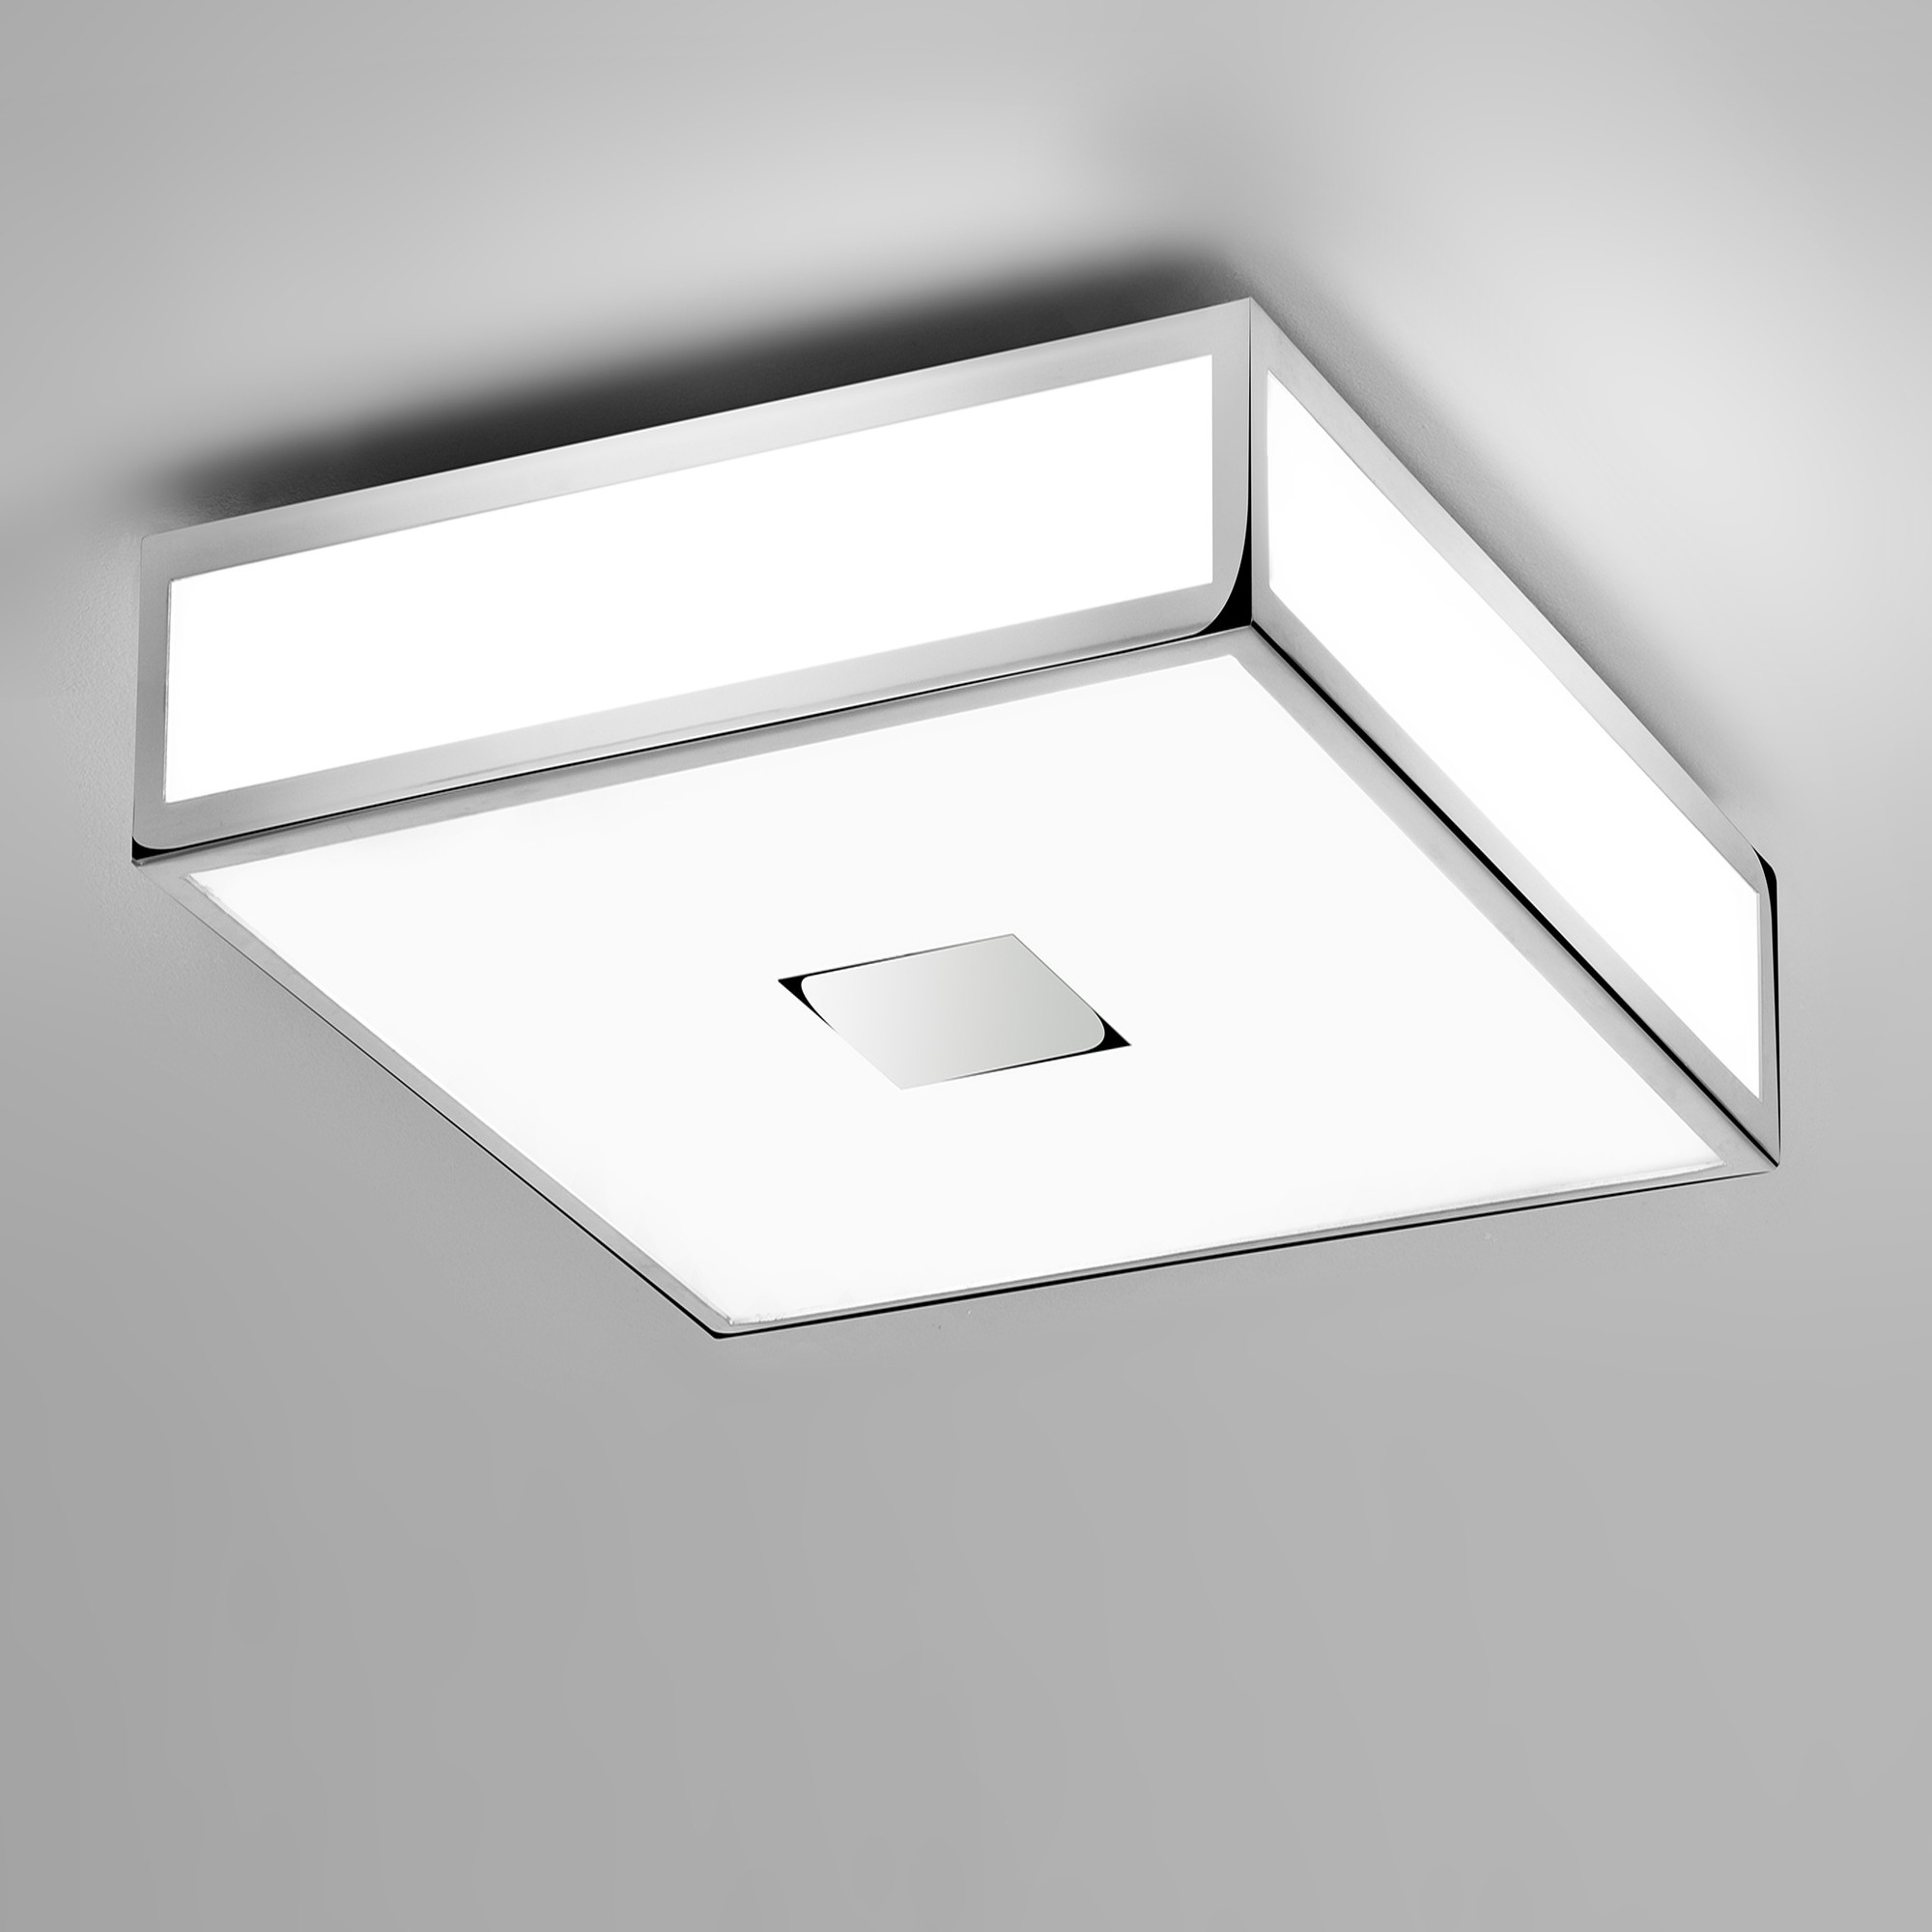 Newest Modern Outdoor Ceiling Lights Inside Decorating : Outdoor Ceiling Light For Boats Led 00599Wh Aaa World (View 16 of 20)